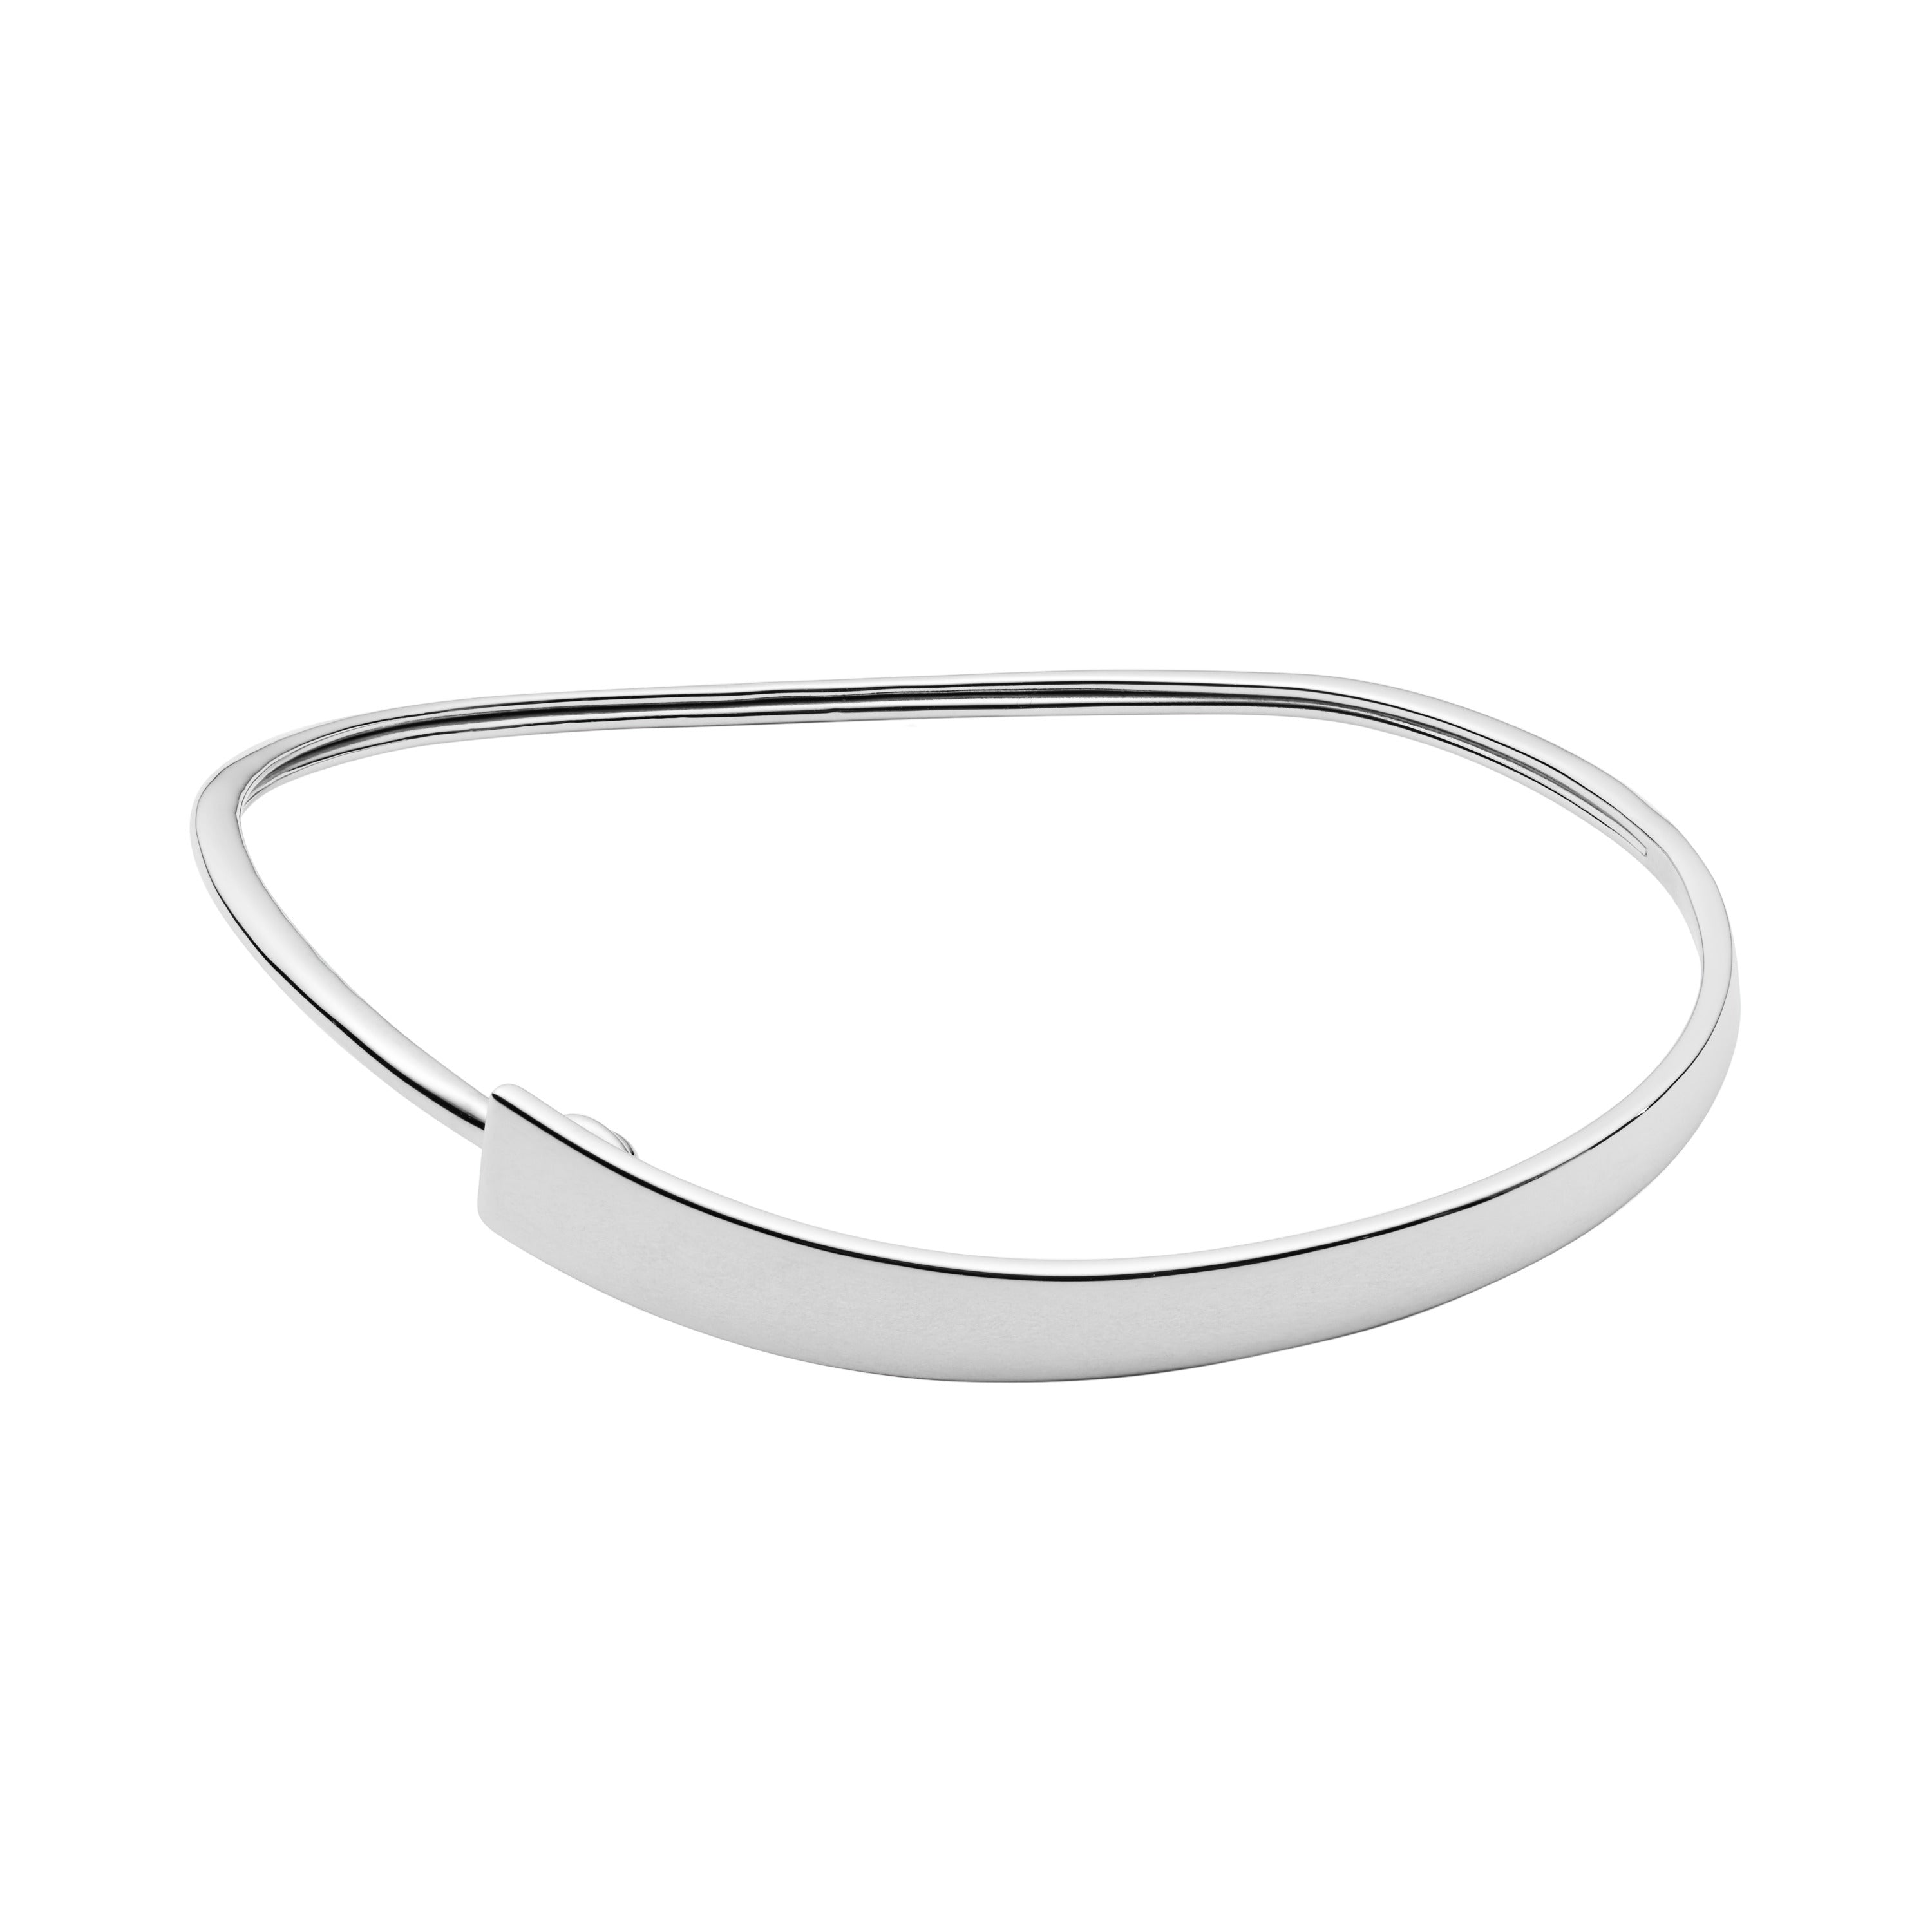 Kariana Silver Tone Bangle